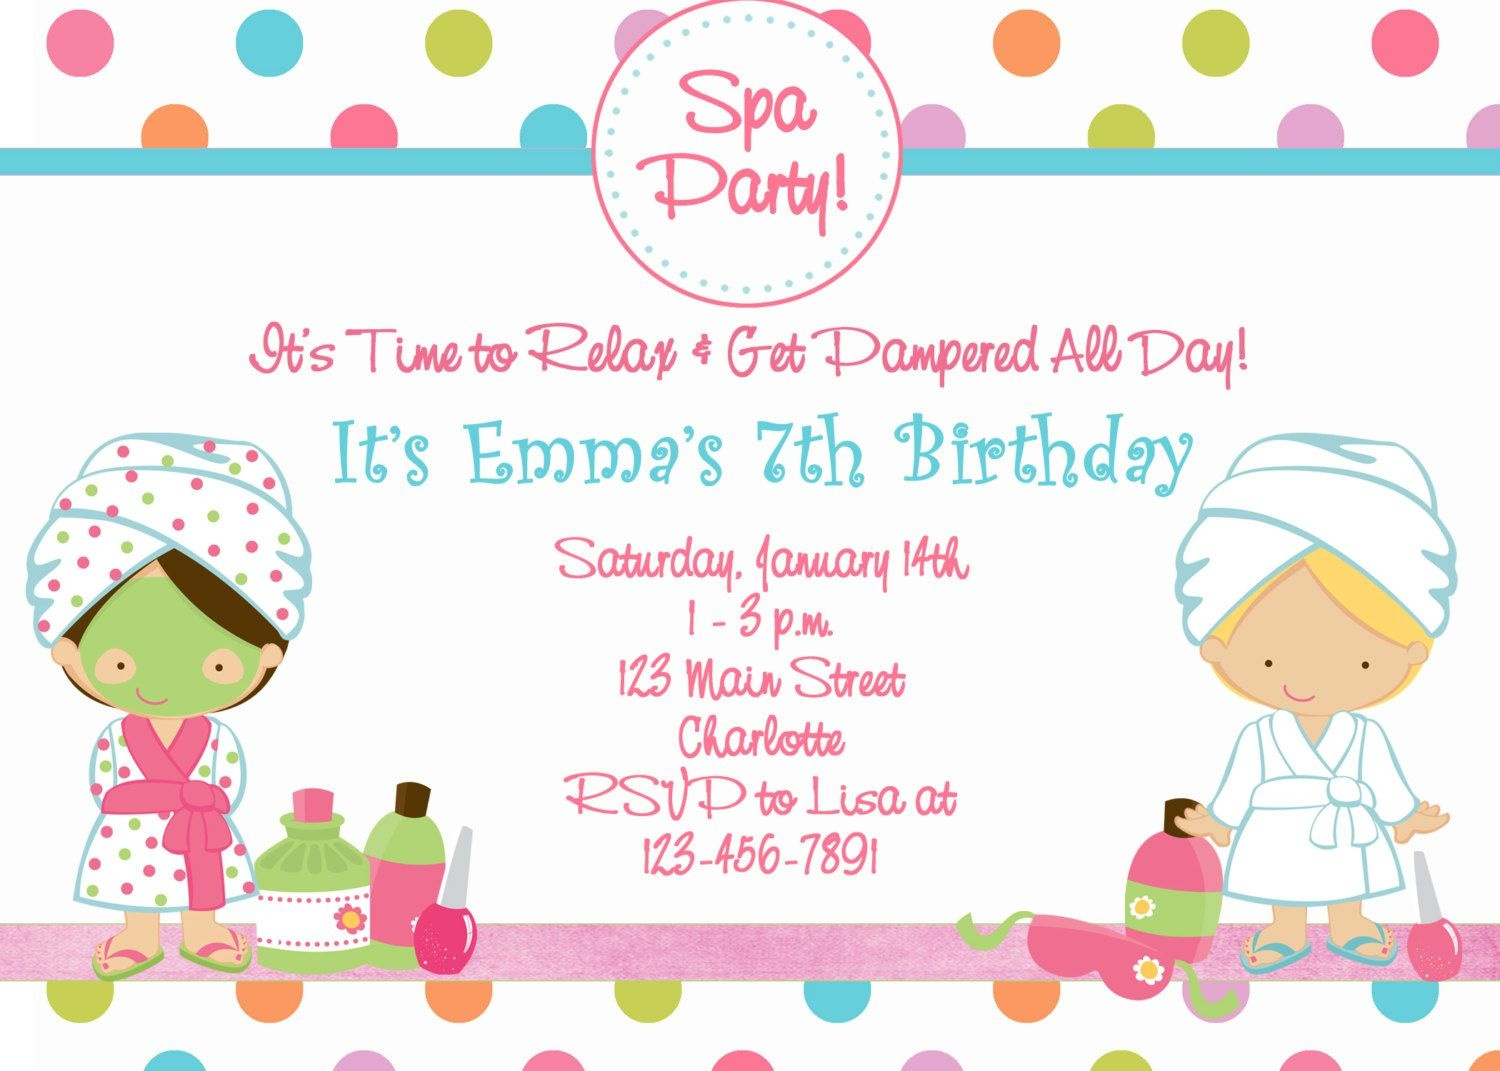 Free Printable Spa Birthday Party Invitations   Spa At Home   Spa - Free Printable Birthday Invitations For Kids